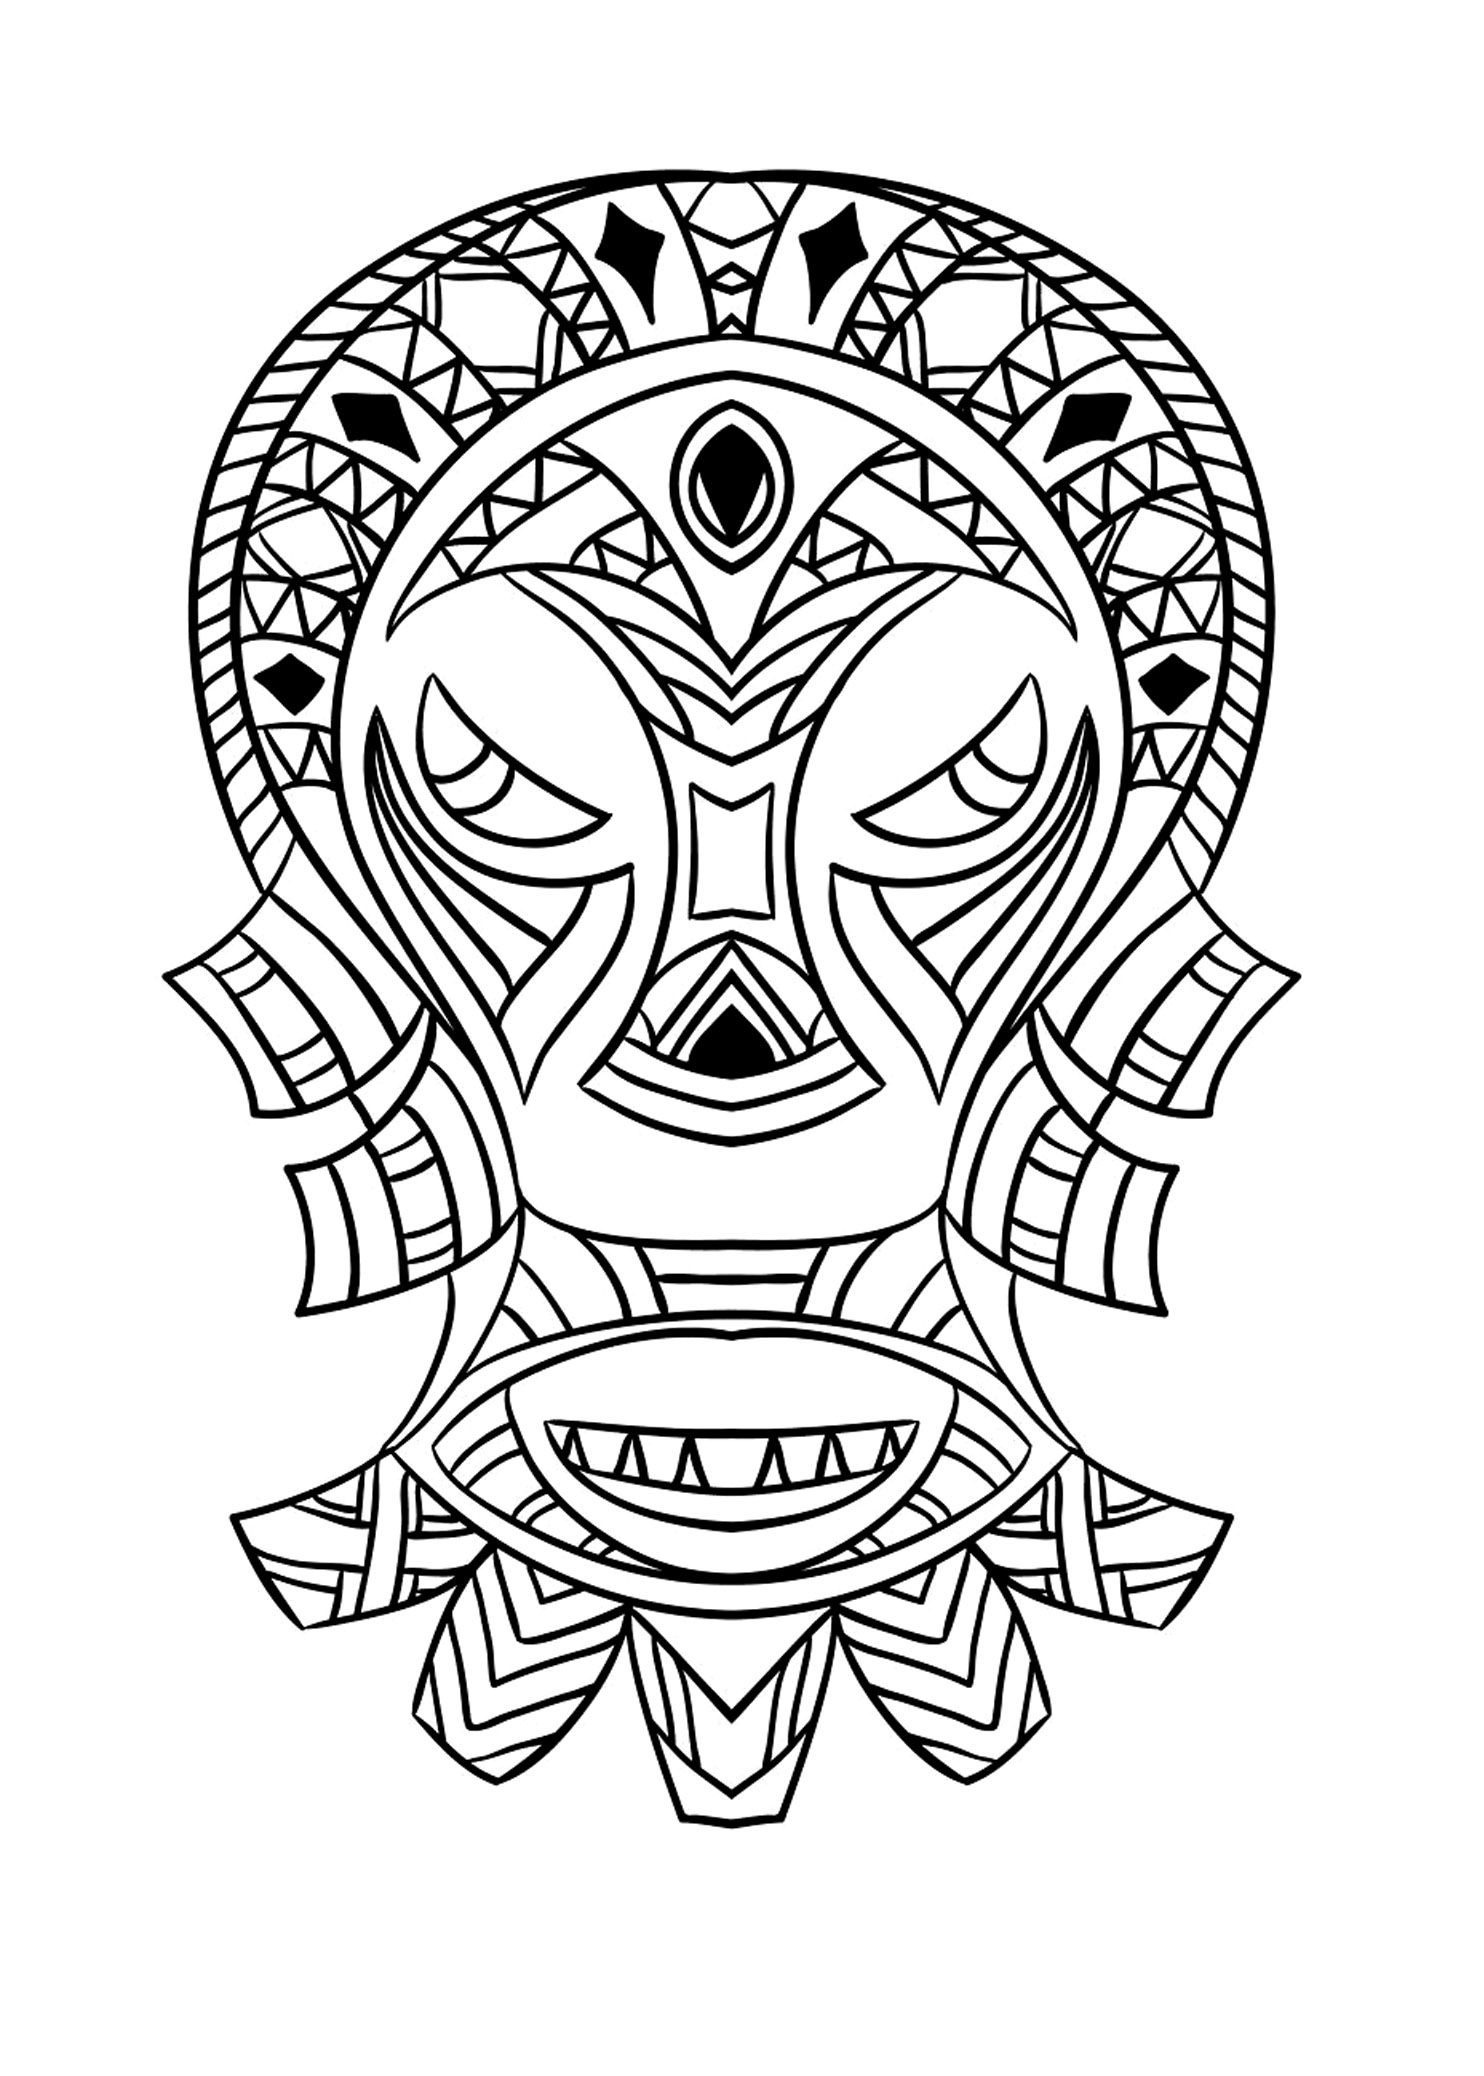 printable african masks coloring pages african mask coloring pages to print coloring pages masks pages printable african coloring